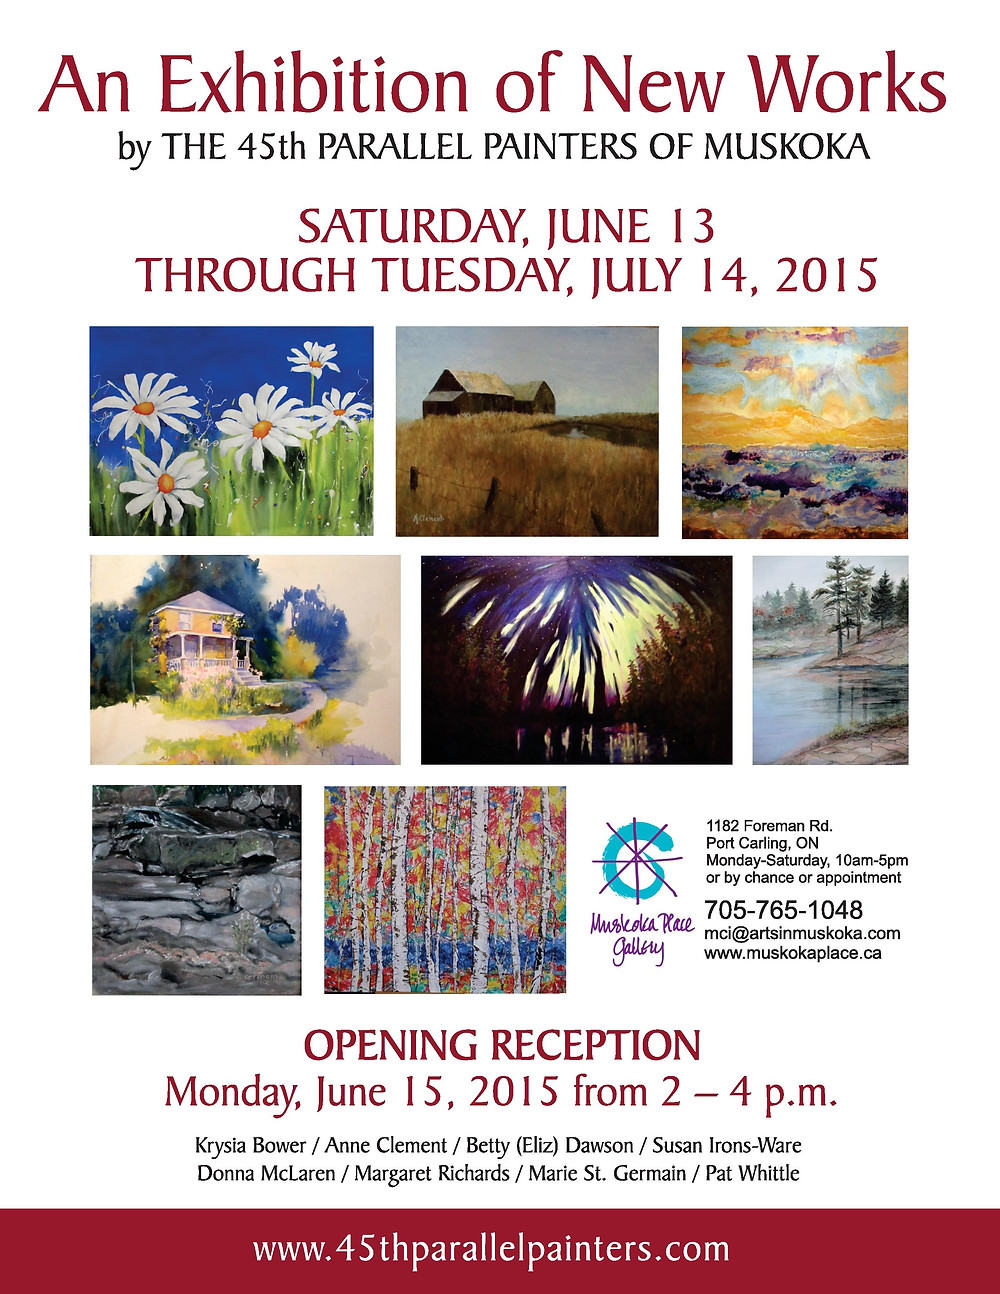 45th parallel painters of muskoka-poster-page-001 (2).jpg